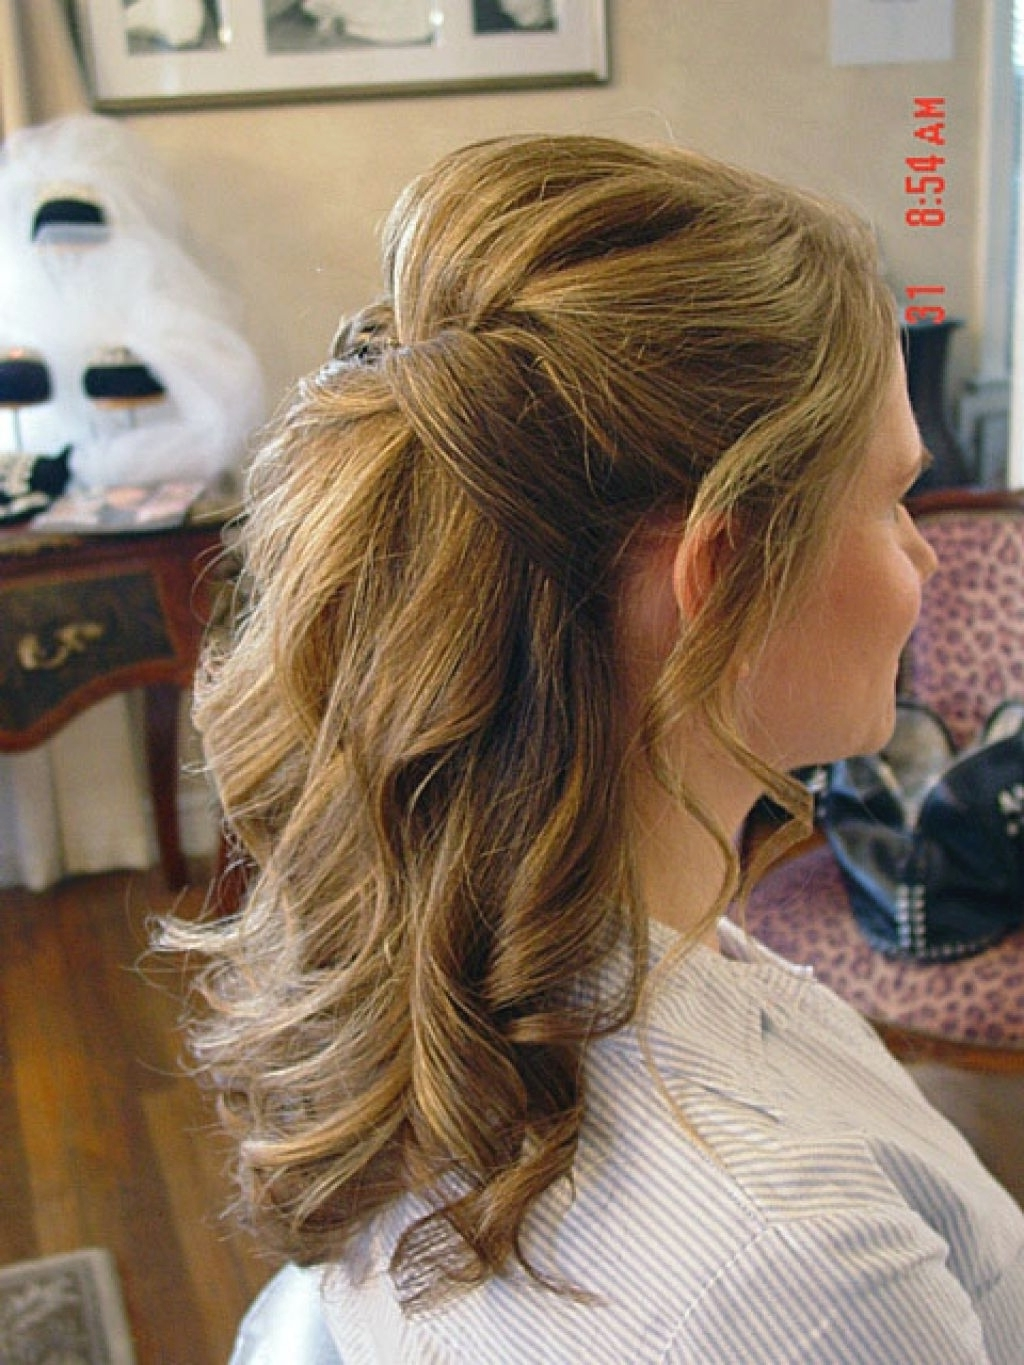 Well Liked Half Up Medium Length Wedding Hairstyles Regarding Wedding Hair Half Up Half Down Mid Length (View 15 of 15)